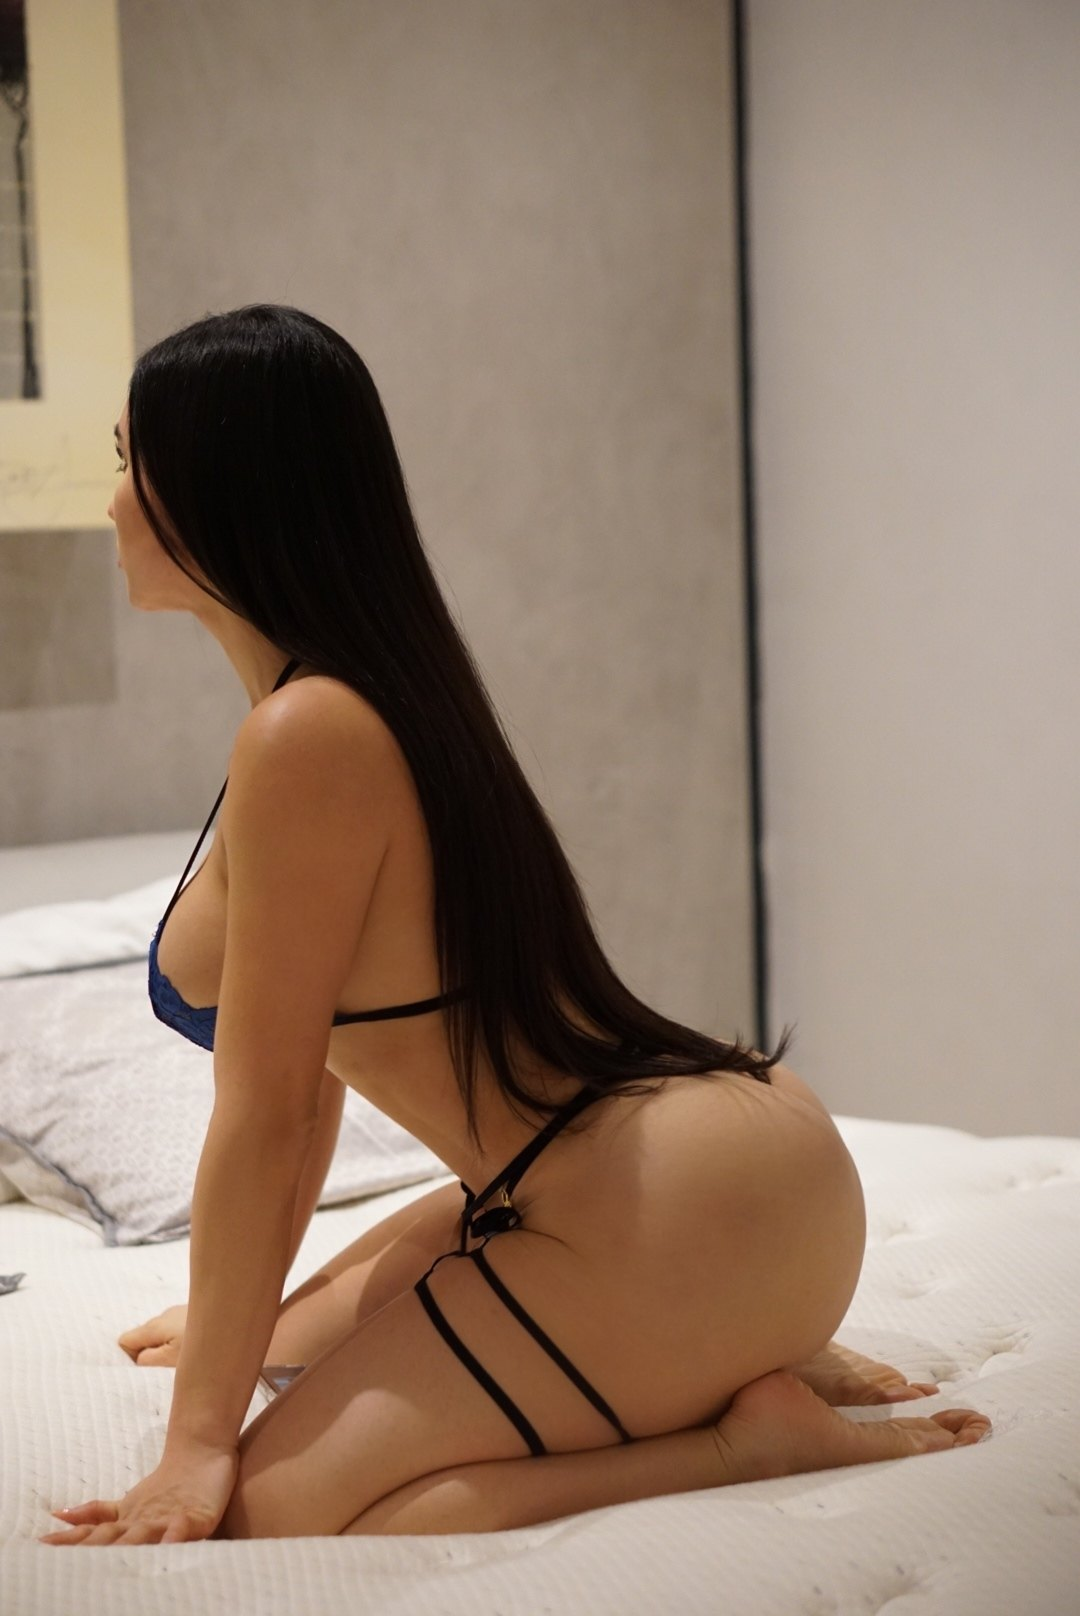 Joselyn Cano Onlyfans 0020